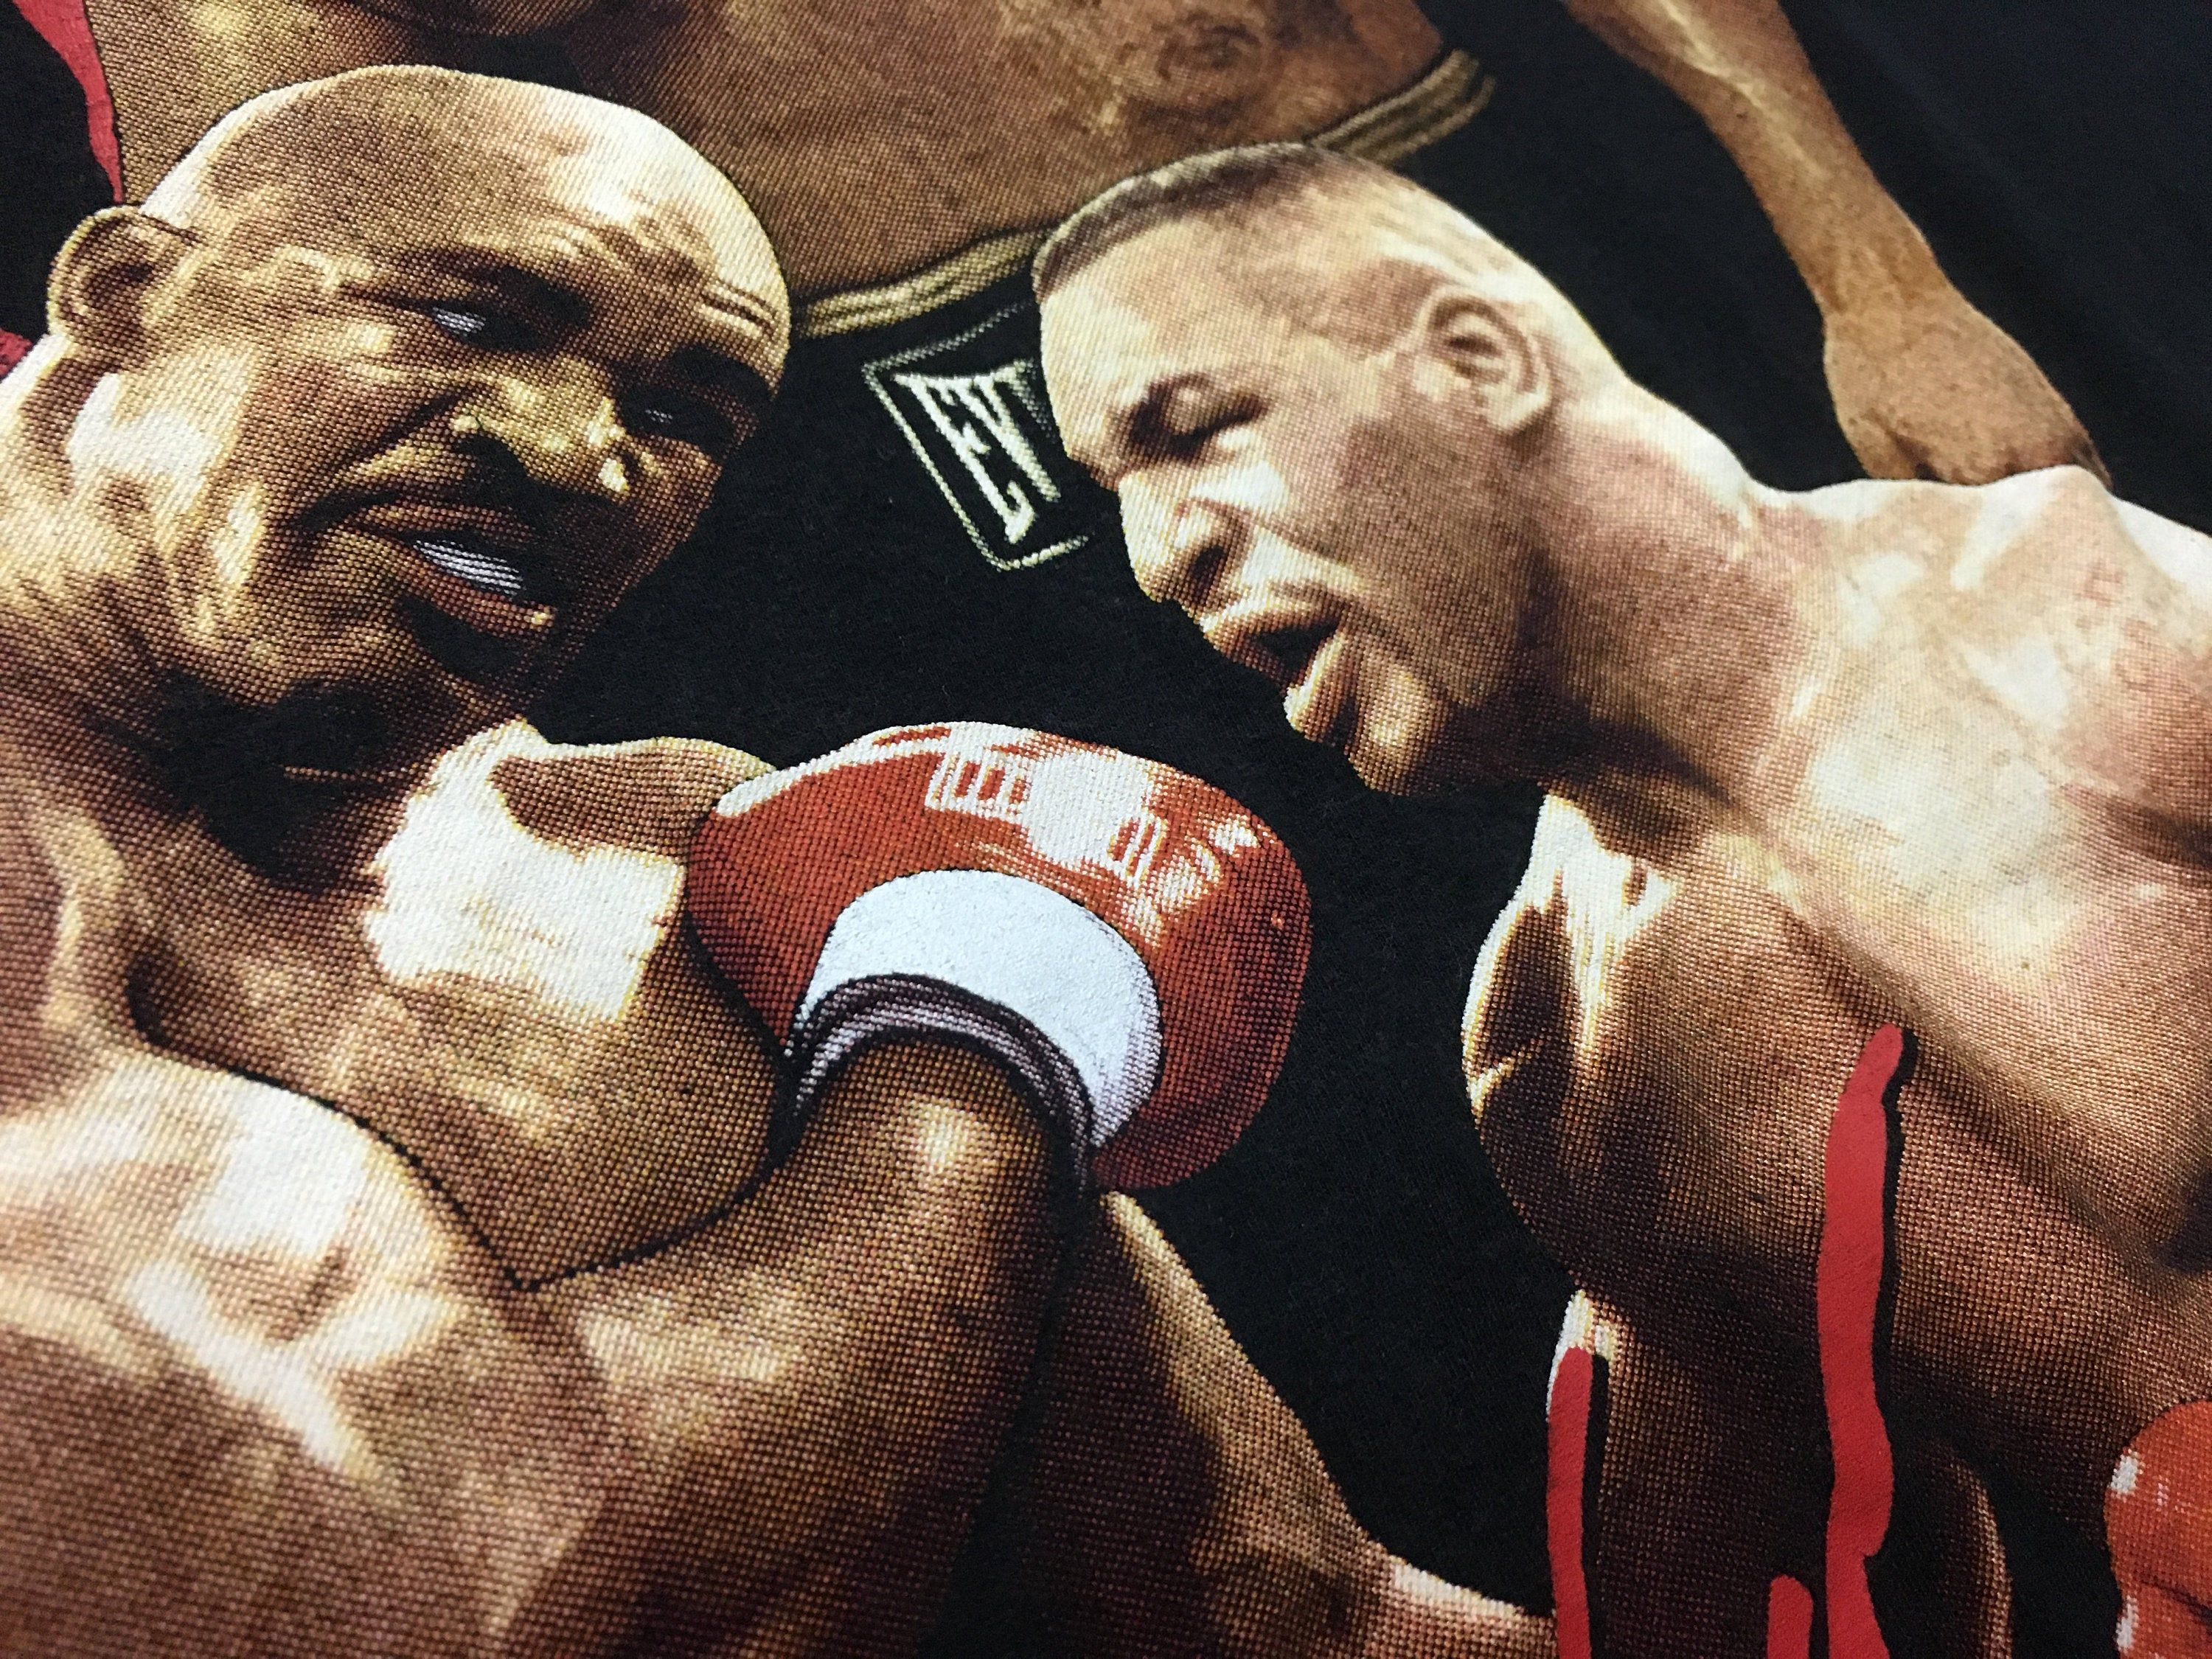 Vintage Mike Tyson Shirt Iron Mike Vs Evander Holyfield Black Size Xl Good Condition 90s Boxing Shirt By Alivevintageshop On Etsy